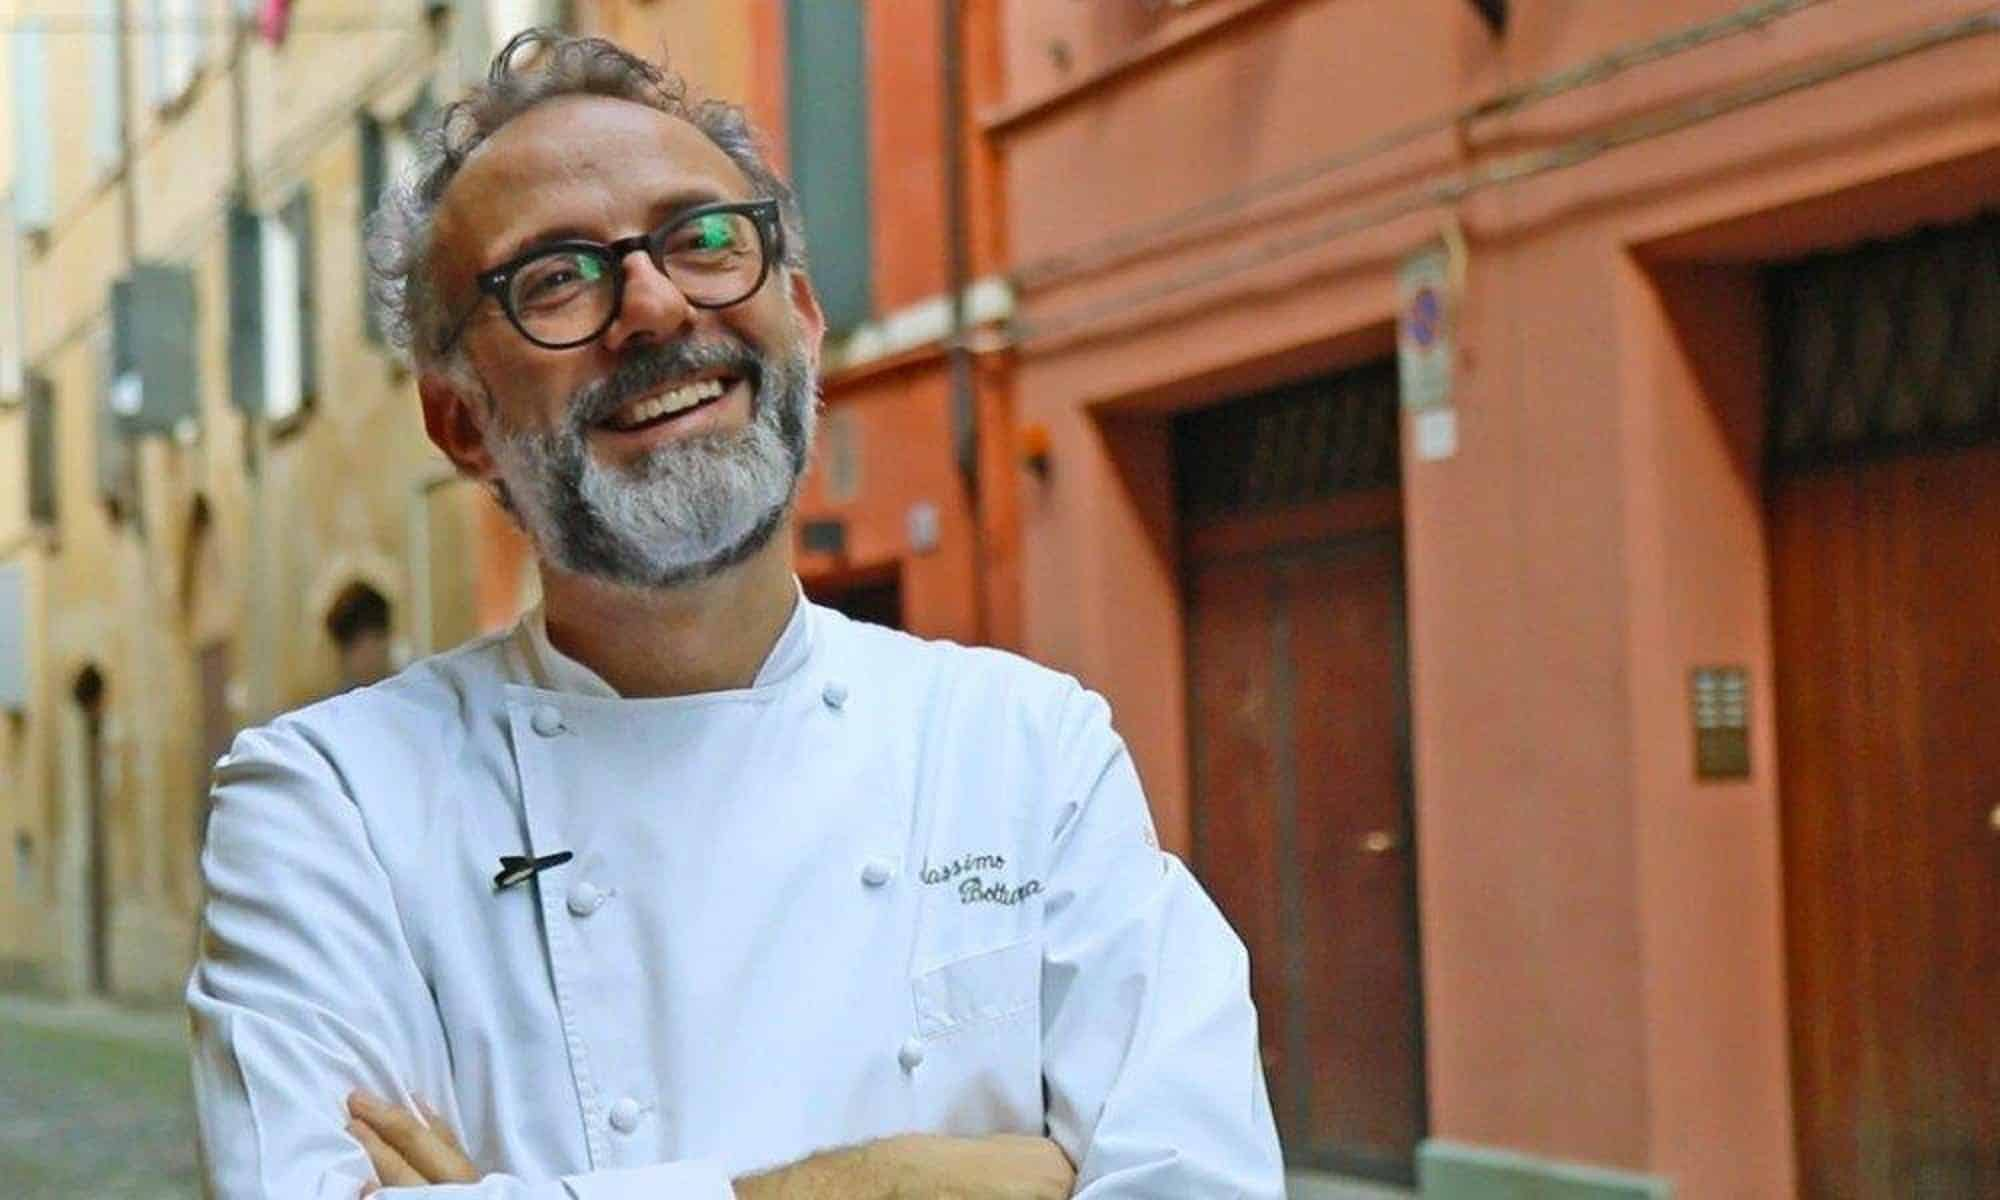 Star Chef Massimo Bottura To Attend Brain Bar Budapest